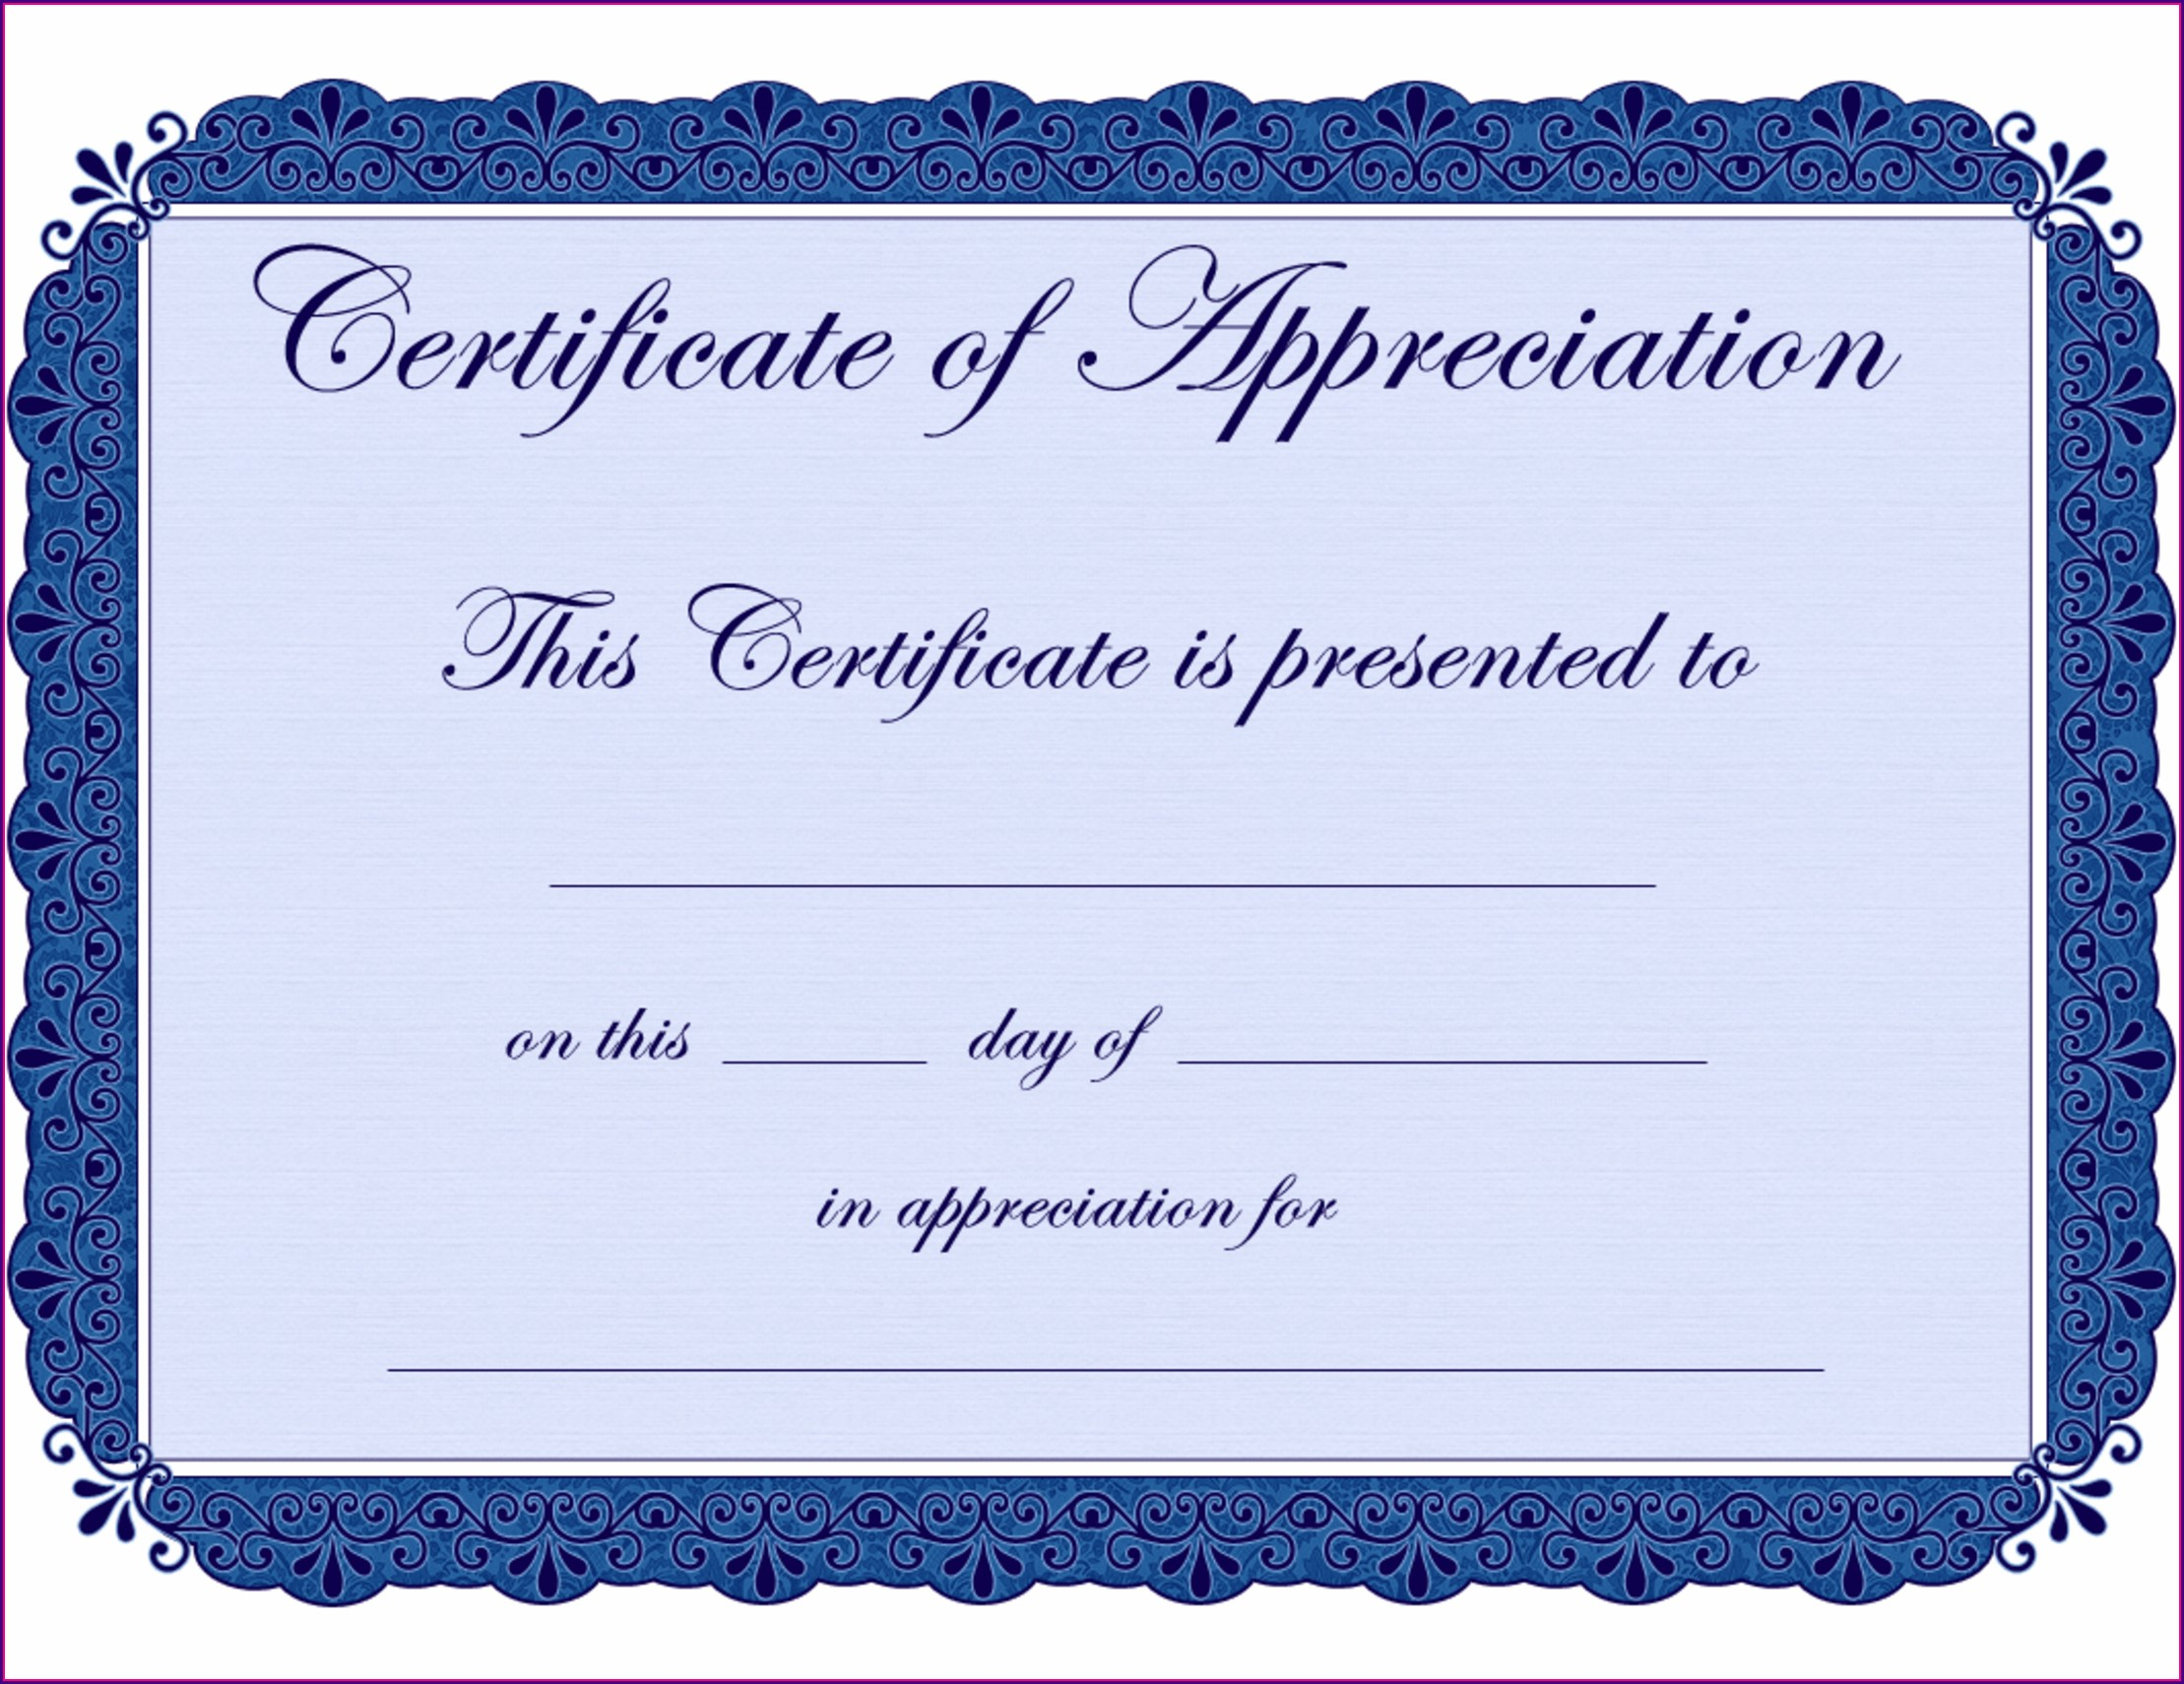 In Appreciation Certificate Templates